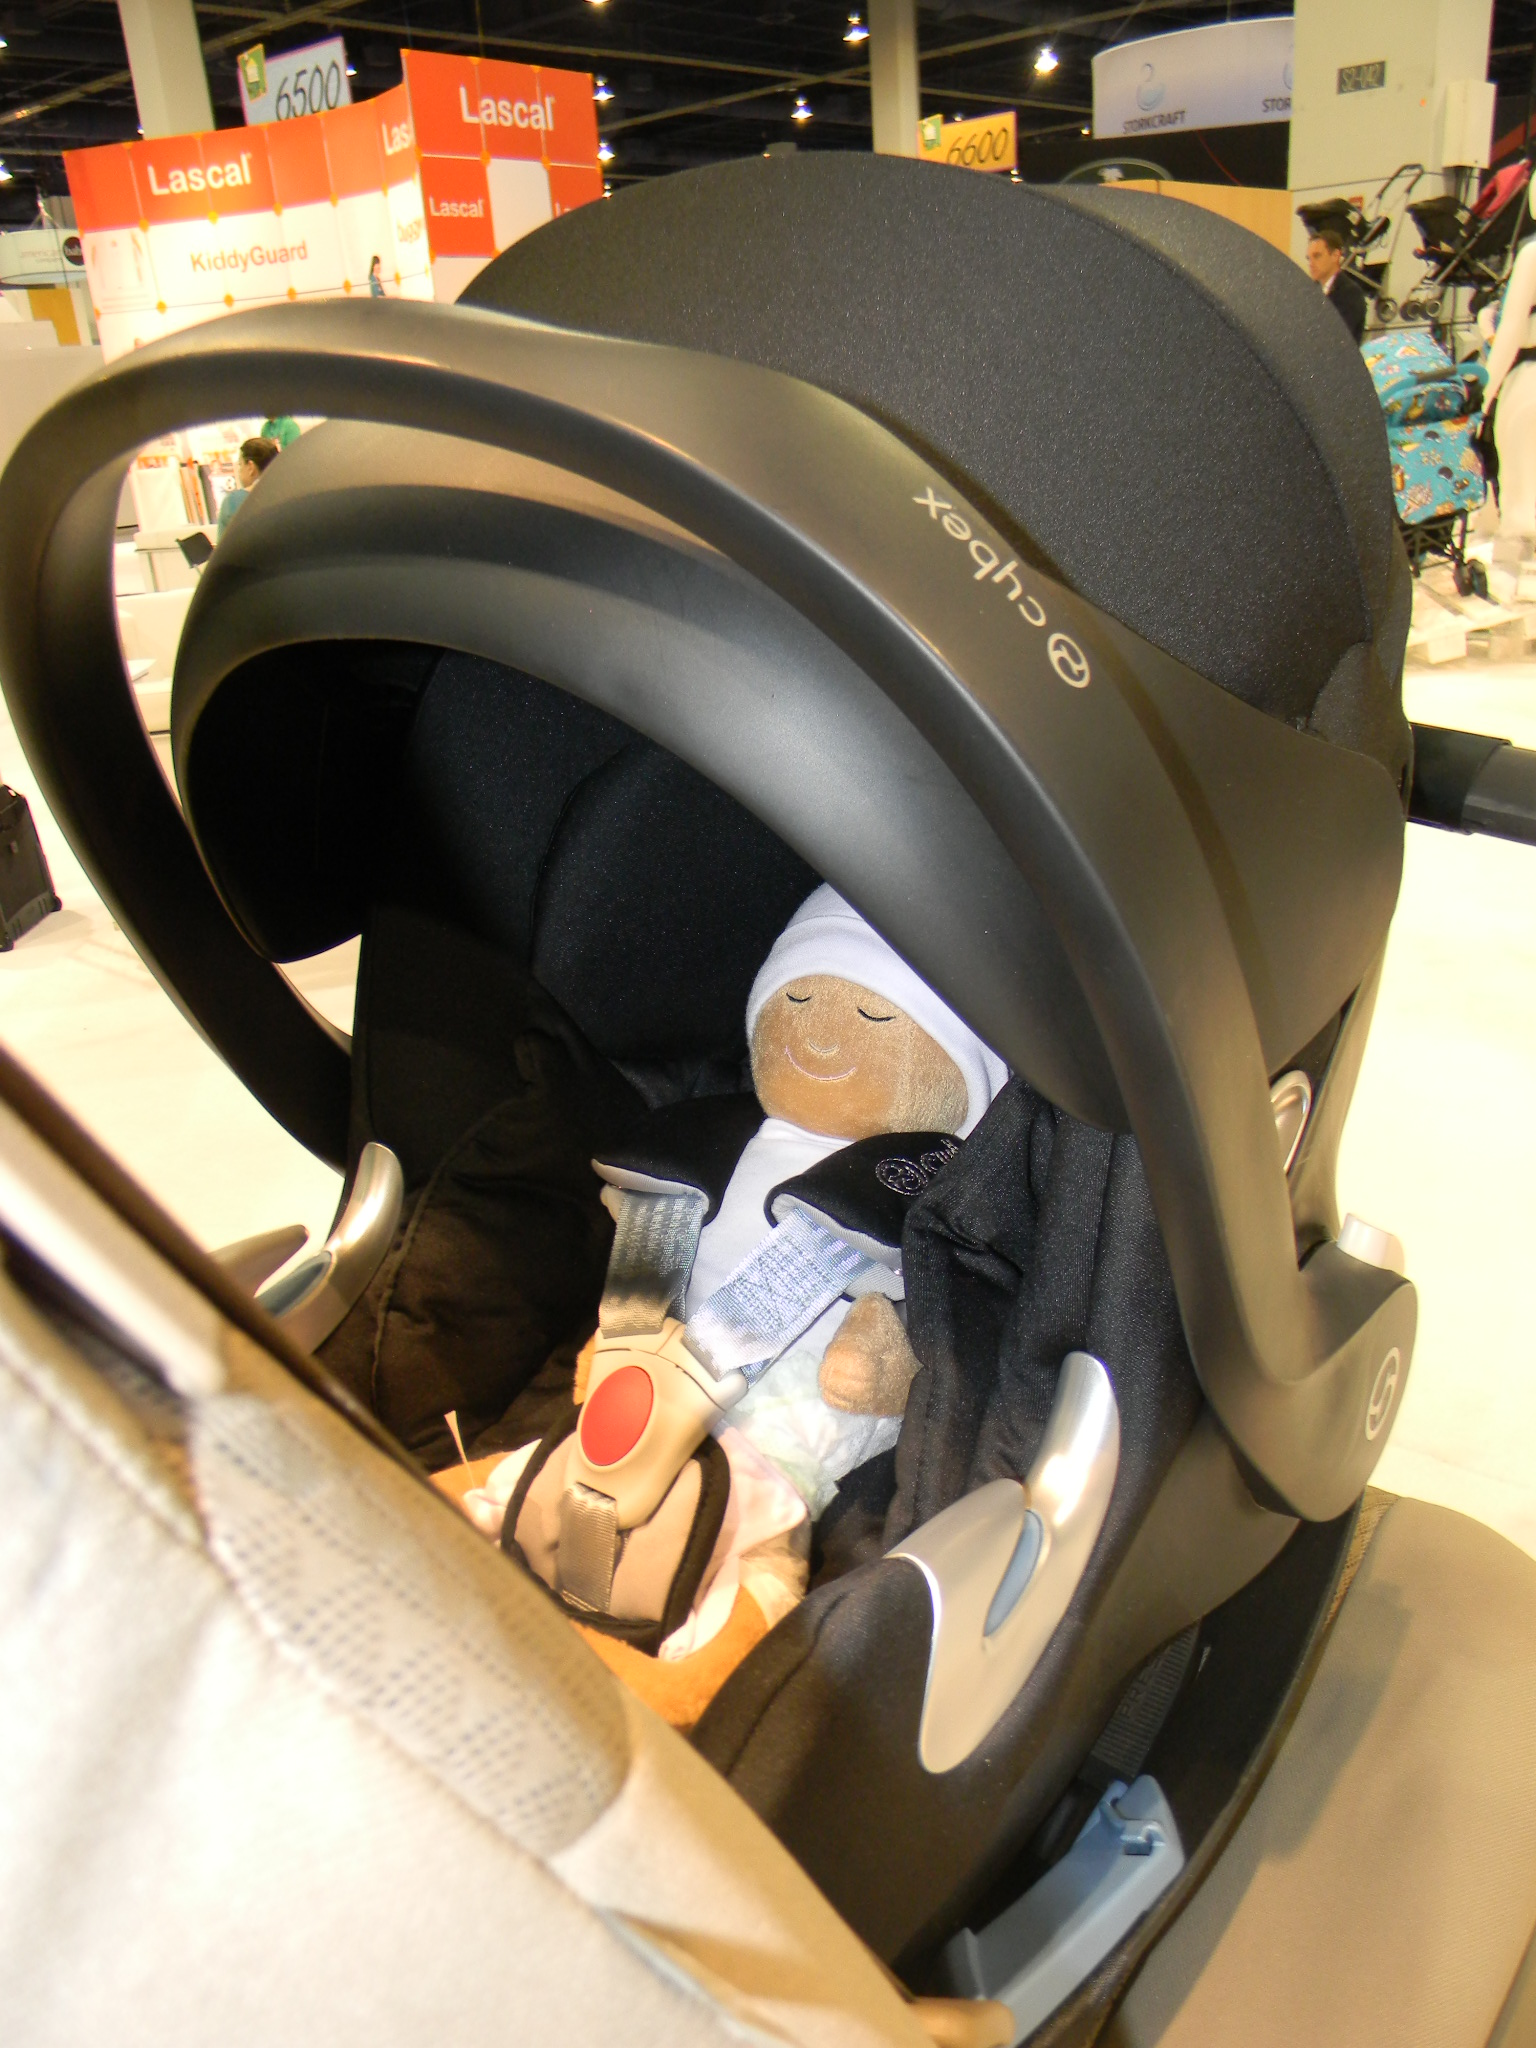 Cybex Aton Q with preemie doll & CarseatBlog: The Most Trusted Source for Car Seat Reviews Ratings ...